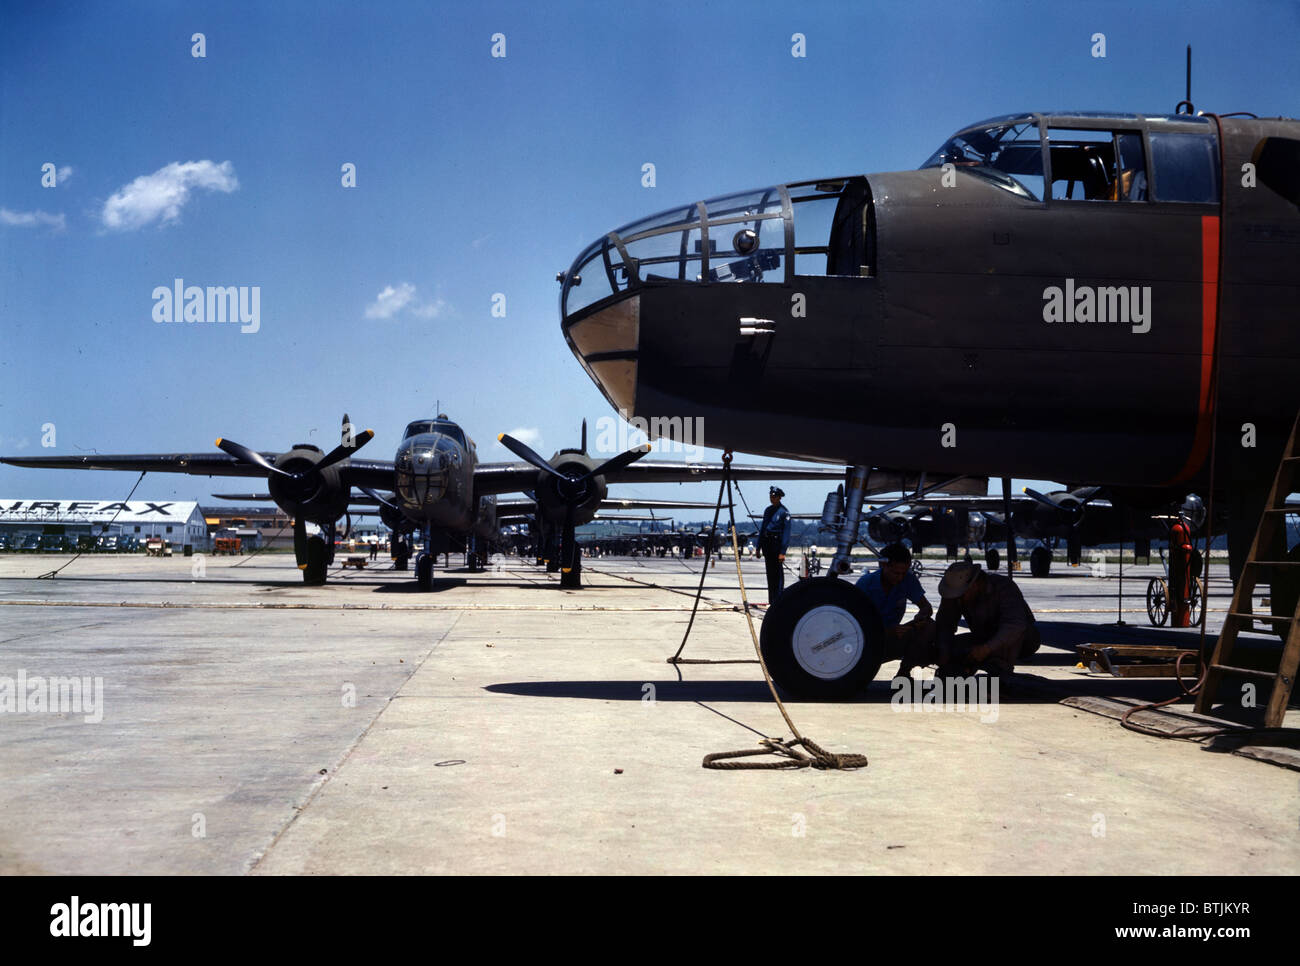 New B-25 bombers lined up for final inspection and tests at the flying field of an aircraft plant, North American - Stock Image